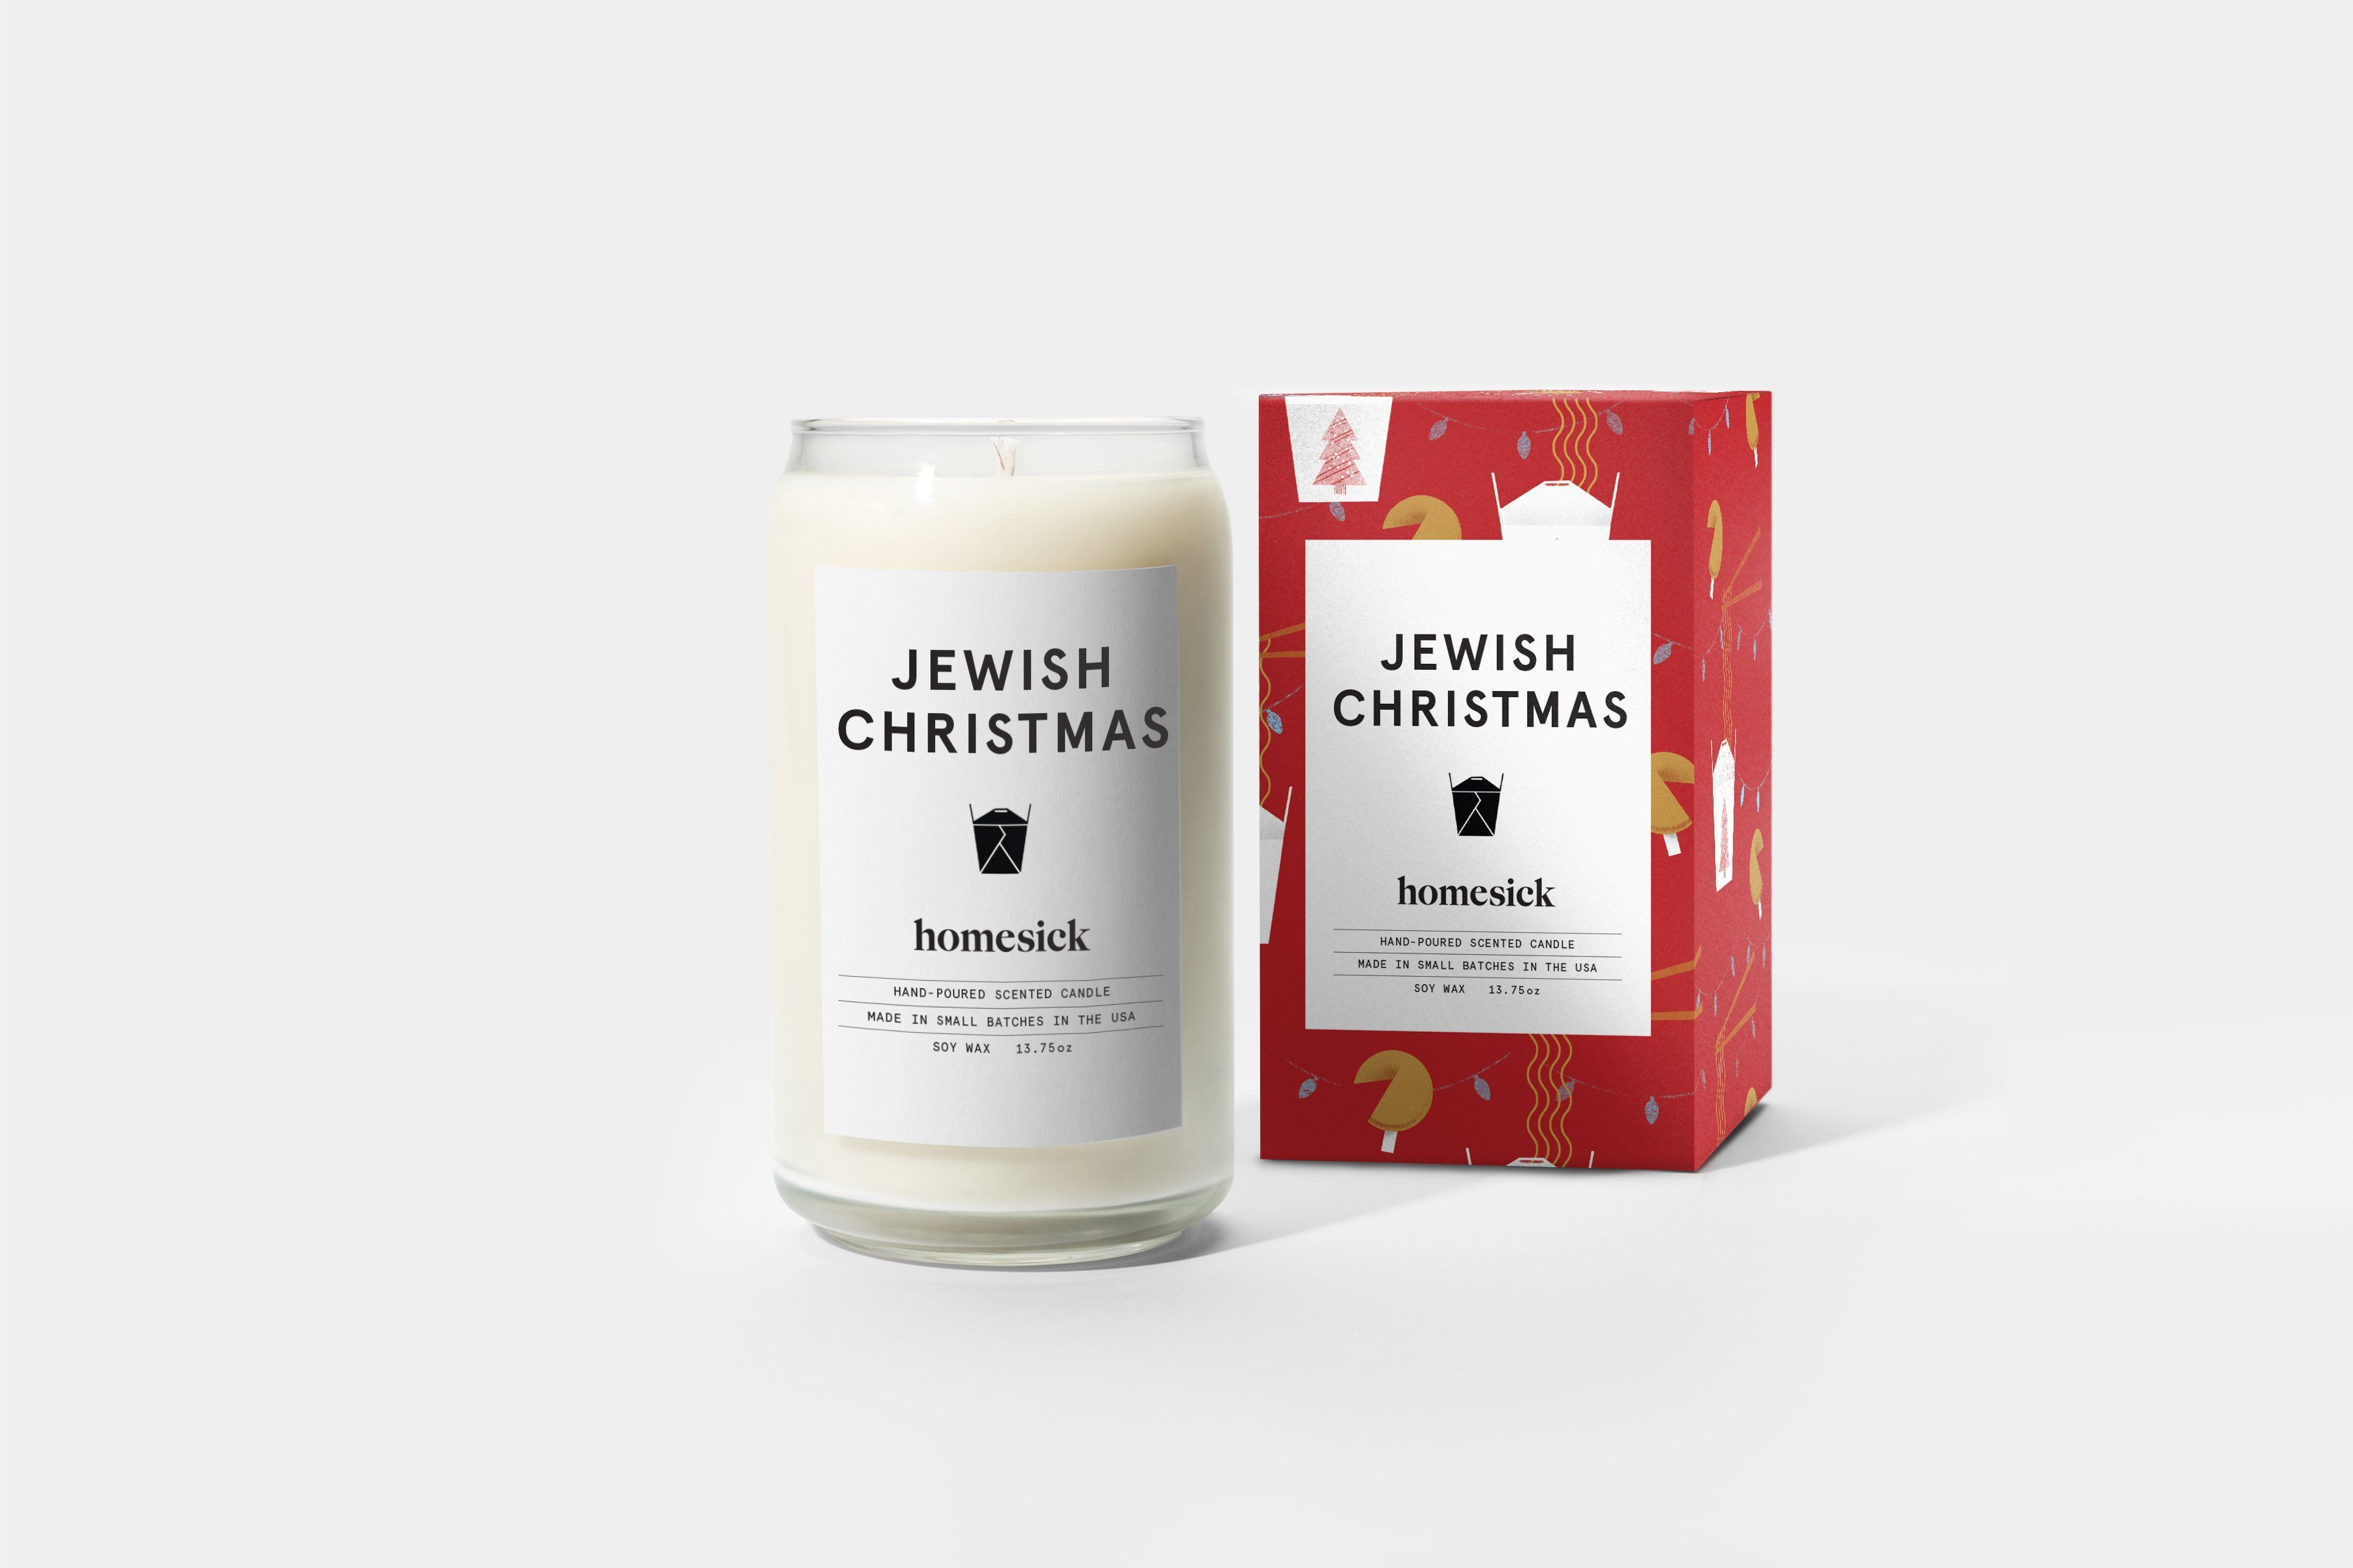 Homesick Holiday Soy Scented Candles 13.75oz brand new